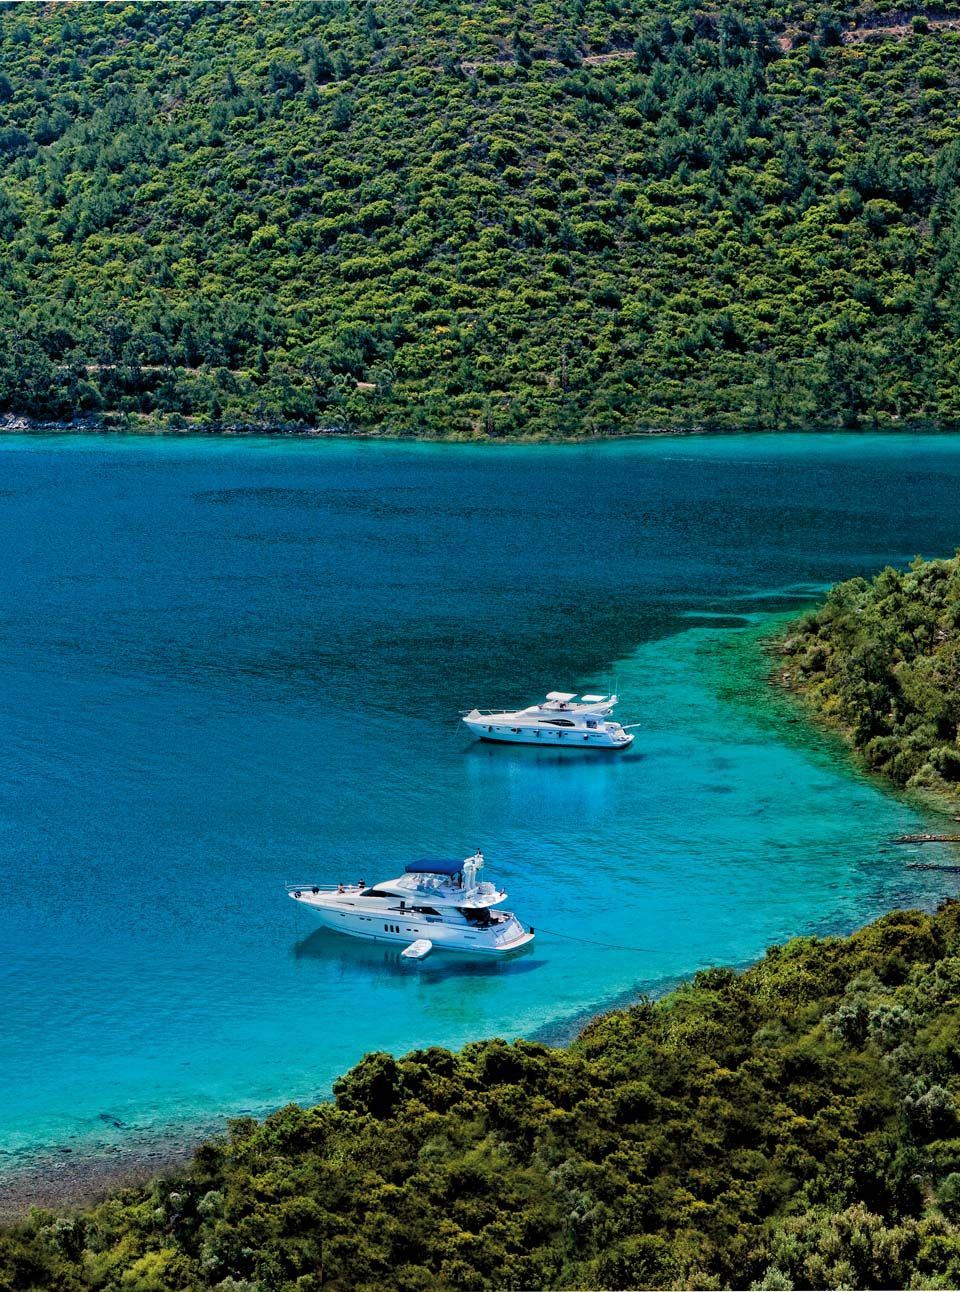 bodrum big and beautiful singles The city of bodrum, with its ancient ruins, lively marina, and beautiful old town,   is a large, luxury property that's one of the best all-inclusives on the bodrum.